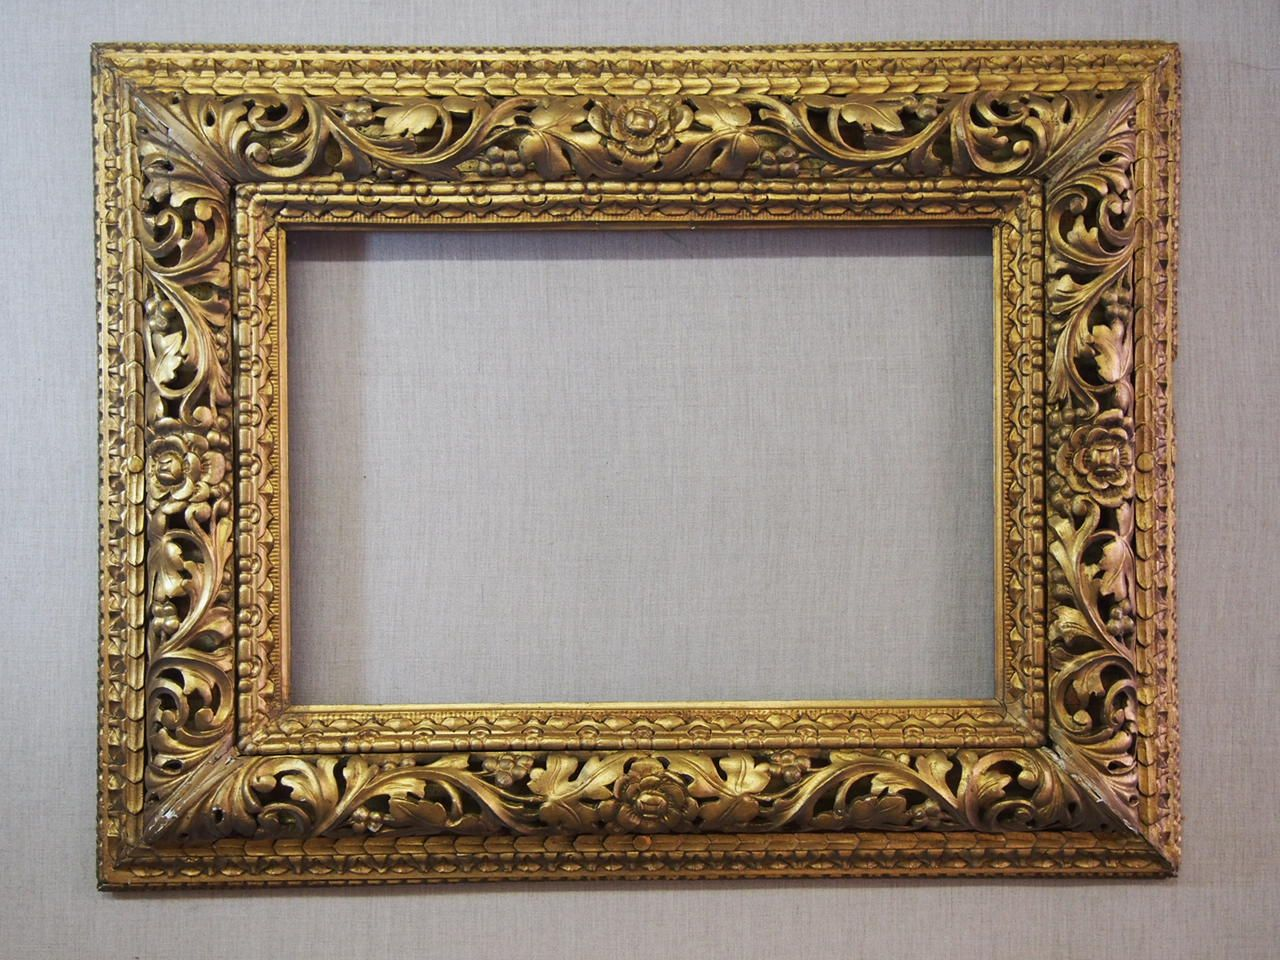 Florentine Carved Frame 19th Century Gold Picture Frames Antique Picture Frames Mirror Frames